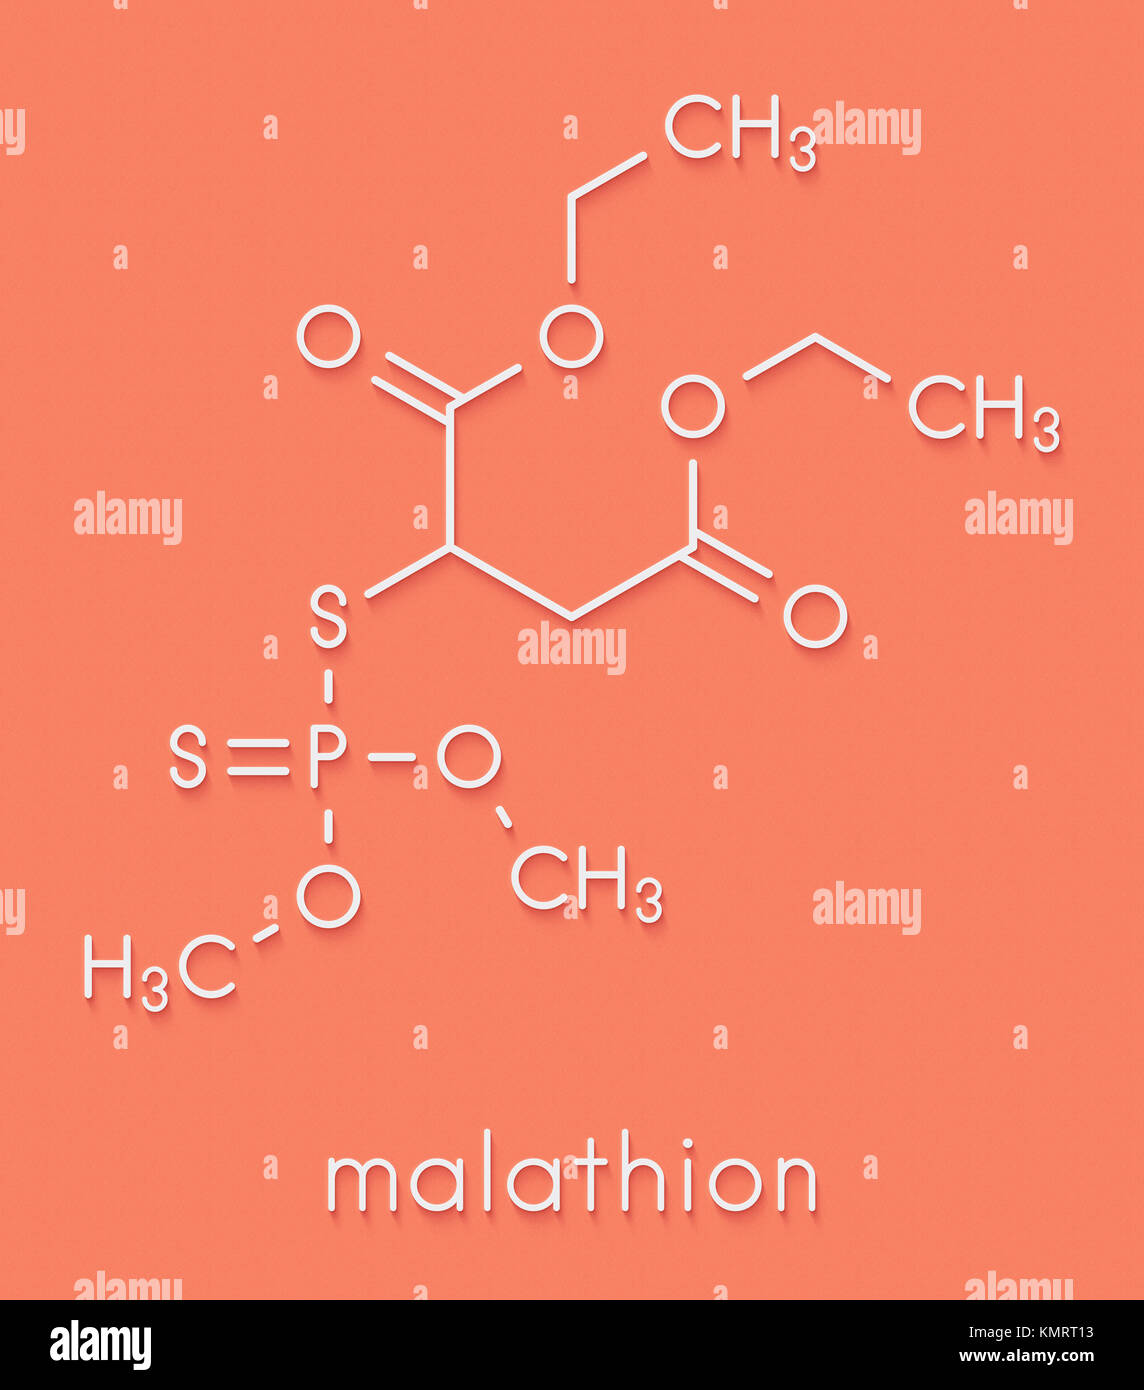 Malathion an organ osphate insecticide